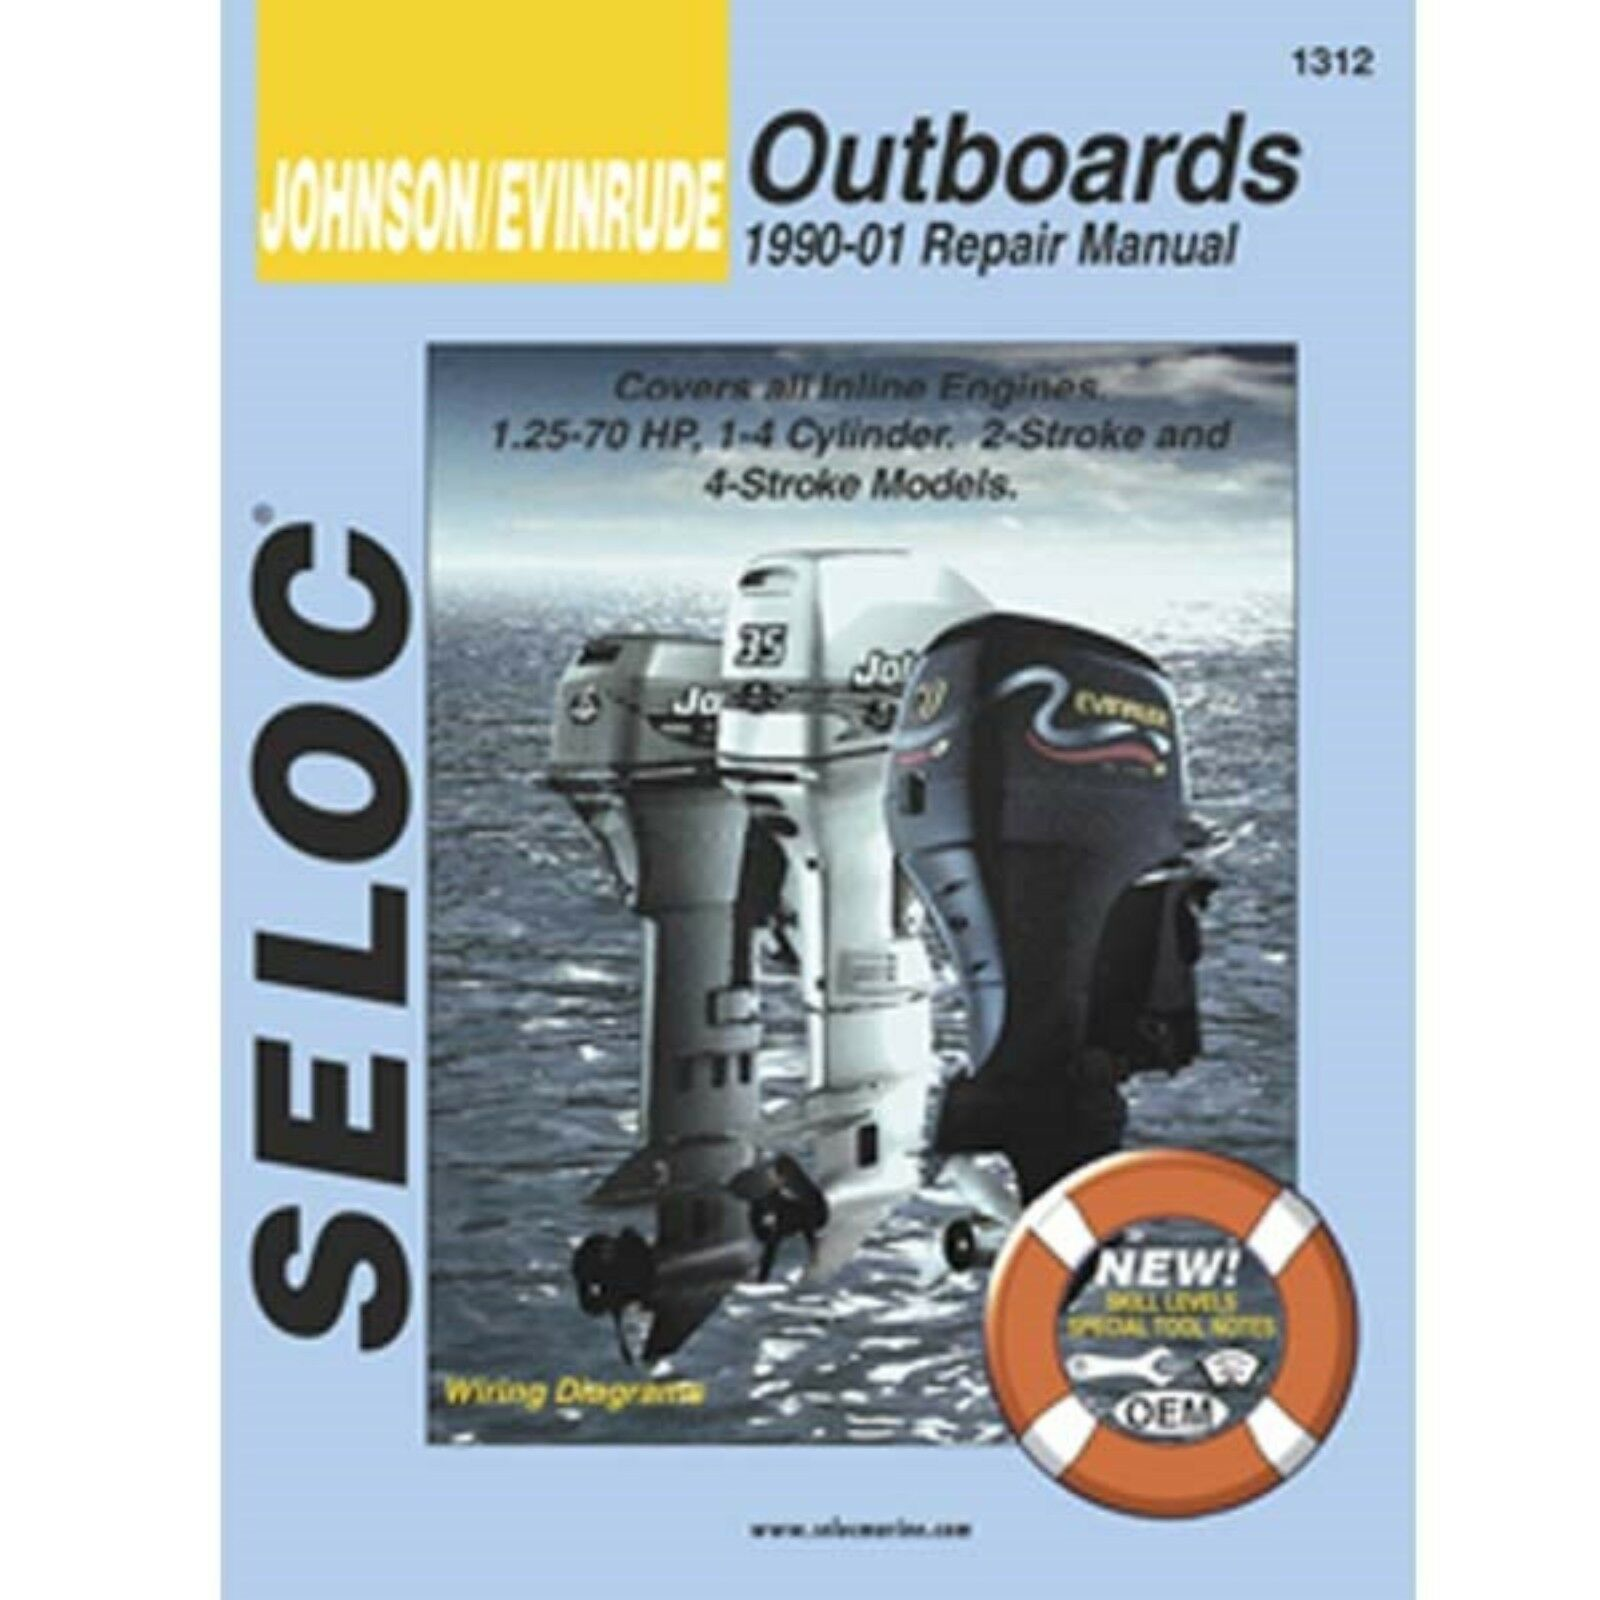 seloc service manual johnson evinrude inline engines 90 01 ebay rh ebay com Manual Metal Gear Solid Ground Zeroes Seloc Online